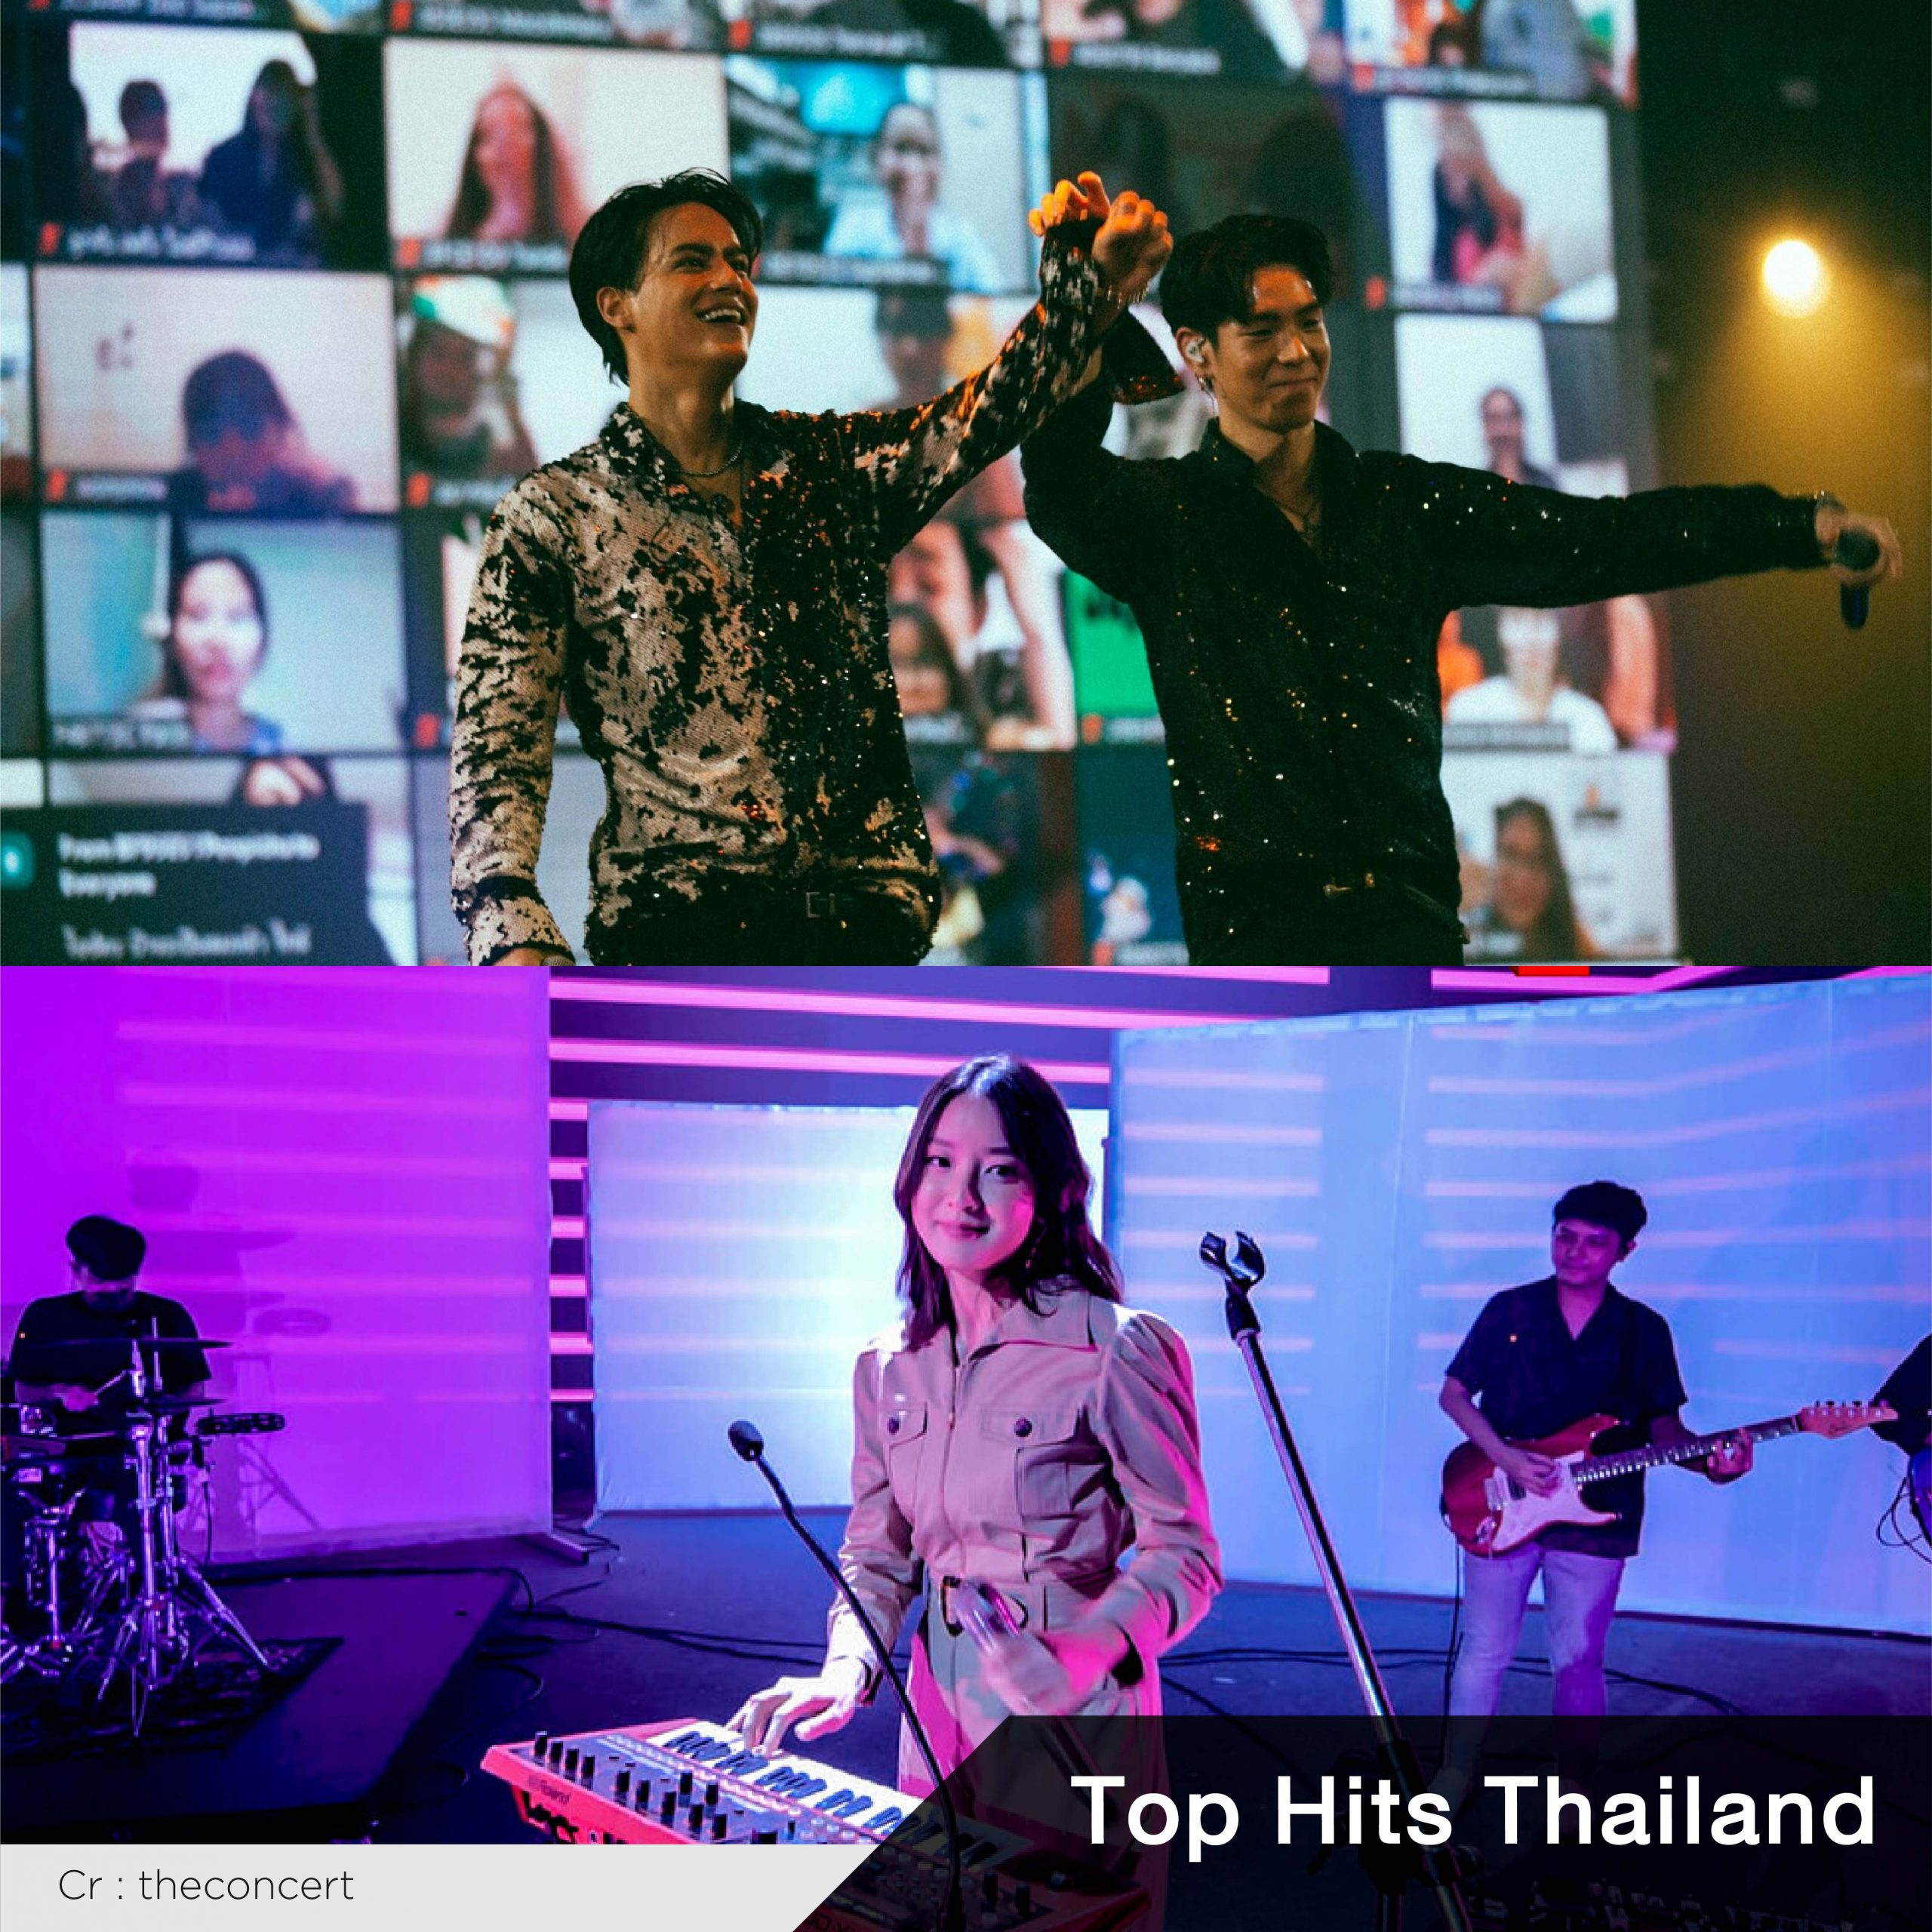 Top Hits Thailand